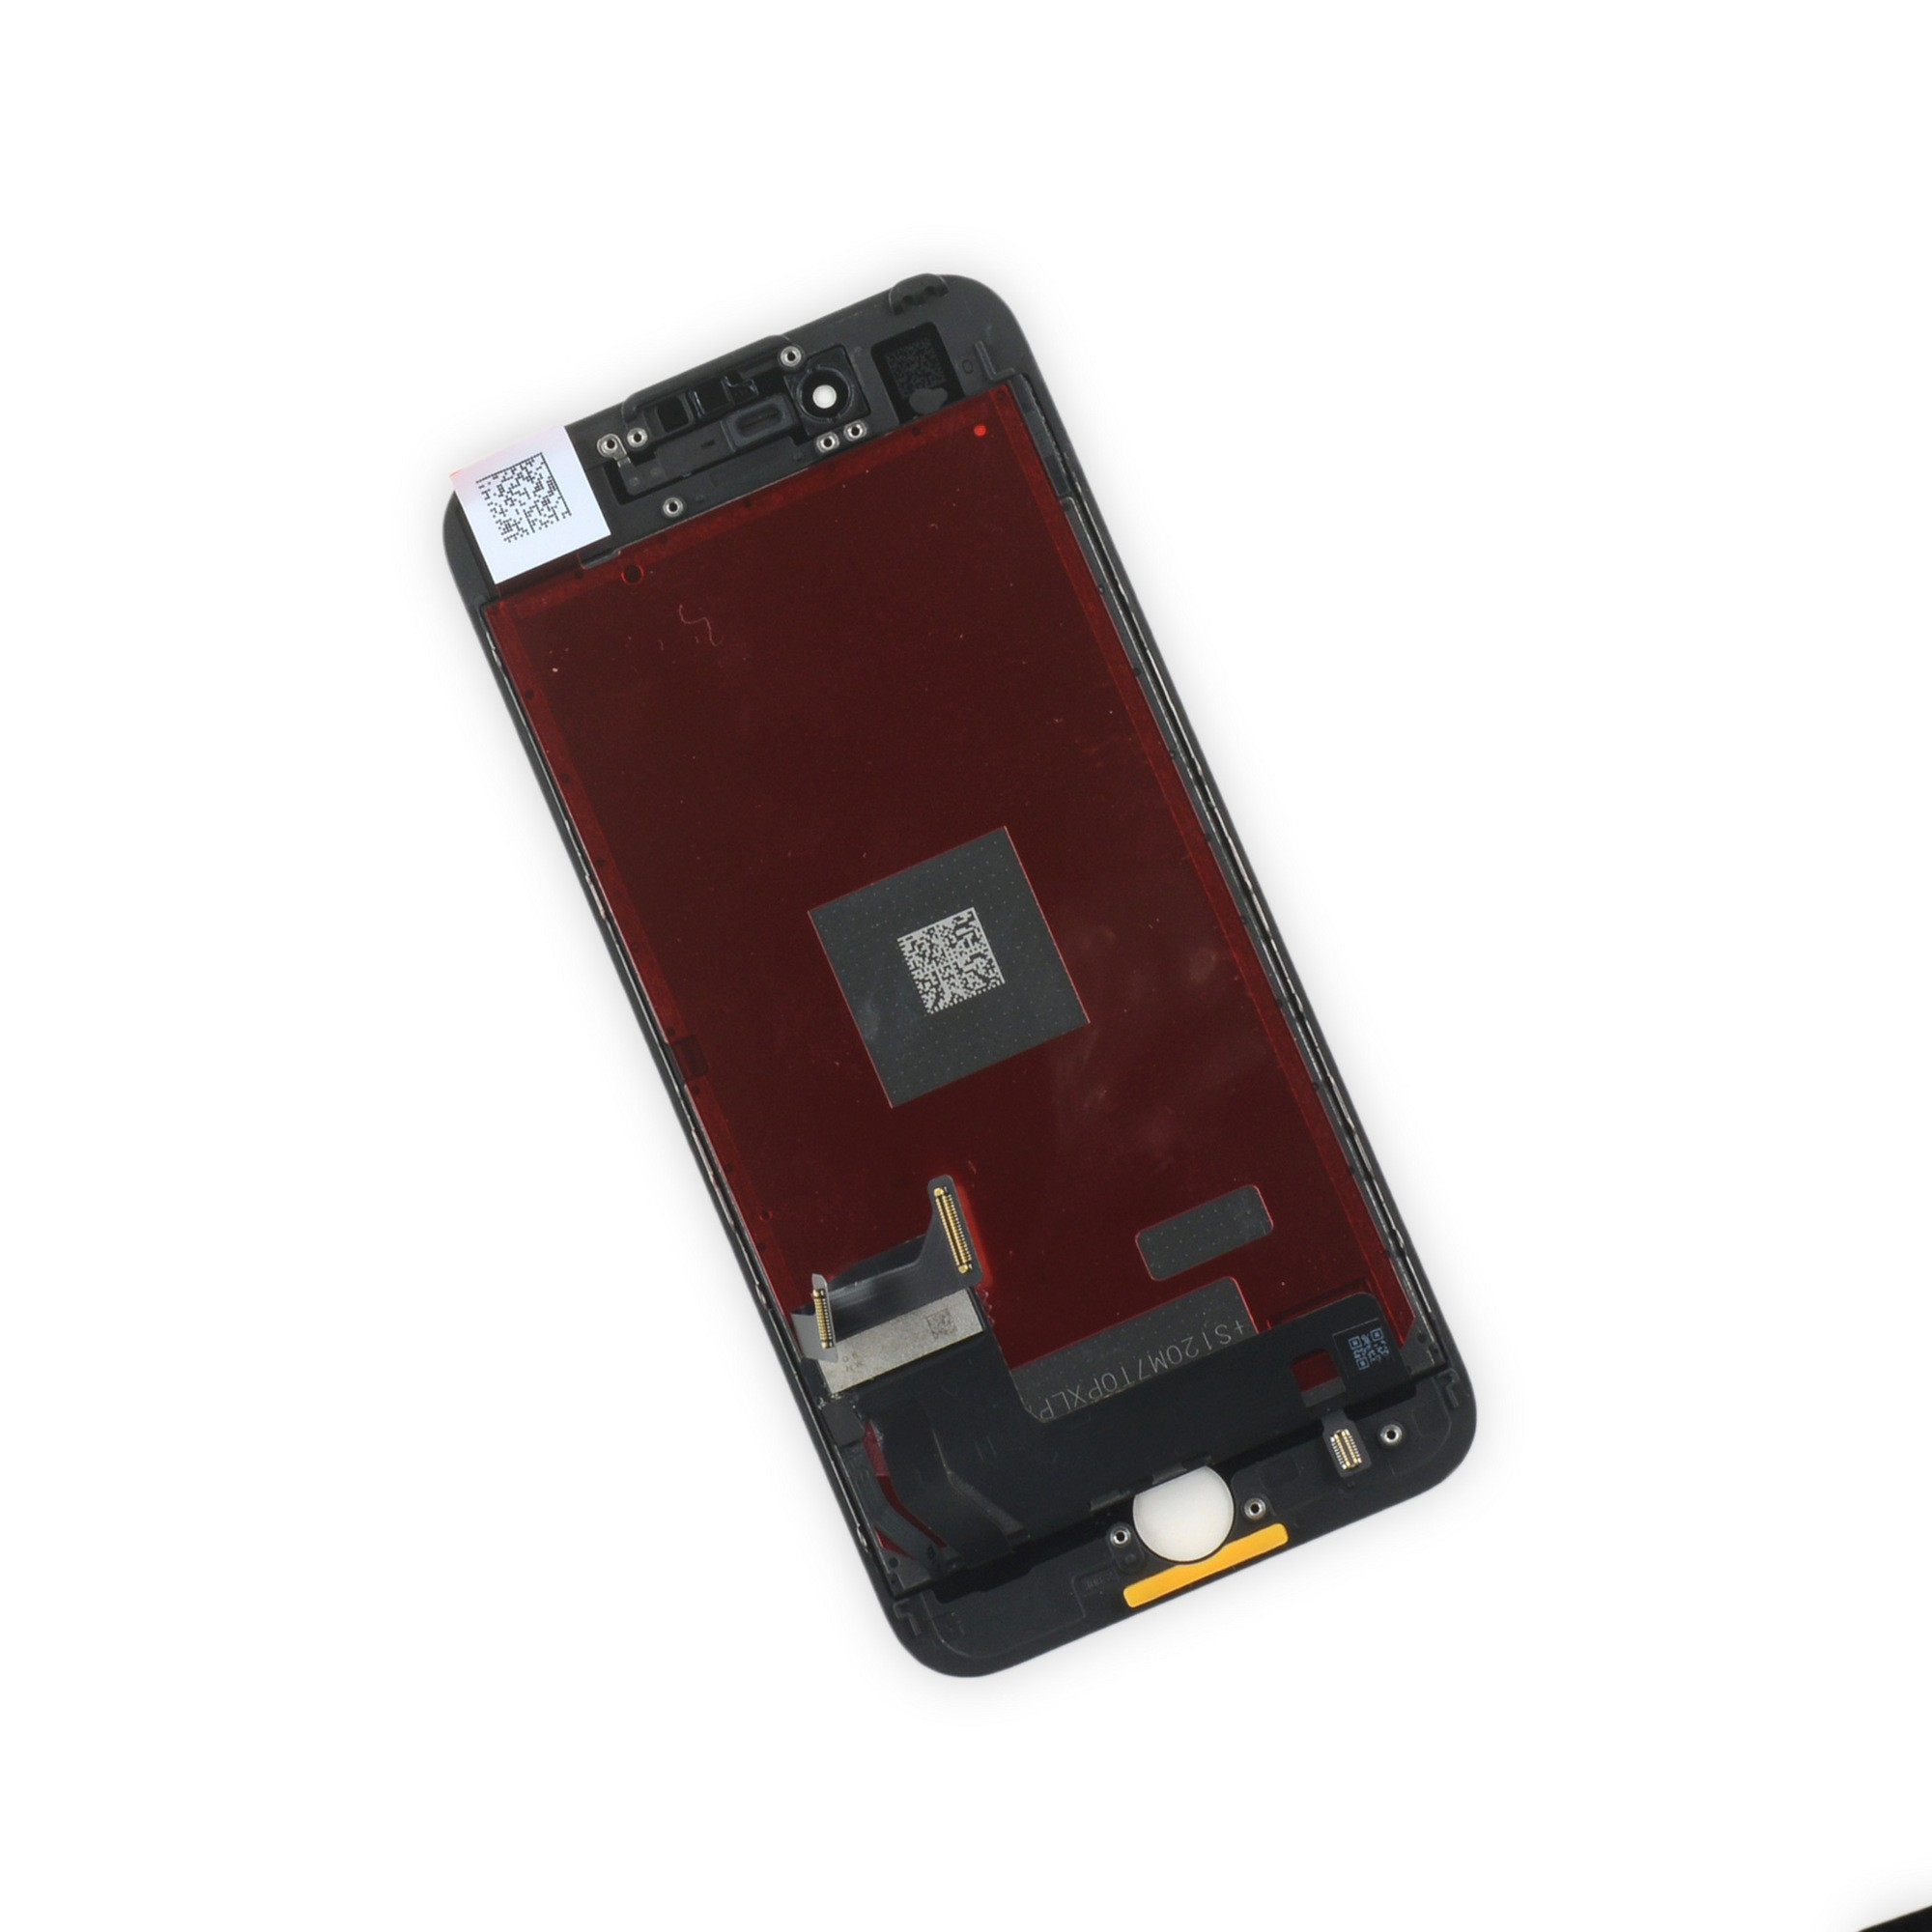 iPhone 7 Complete LCD w/ Digitizer, Brand New - Black, I7A-001B